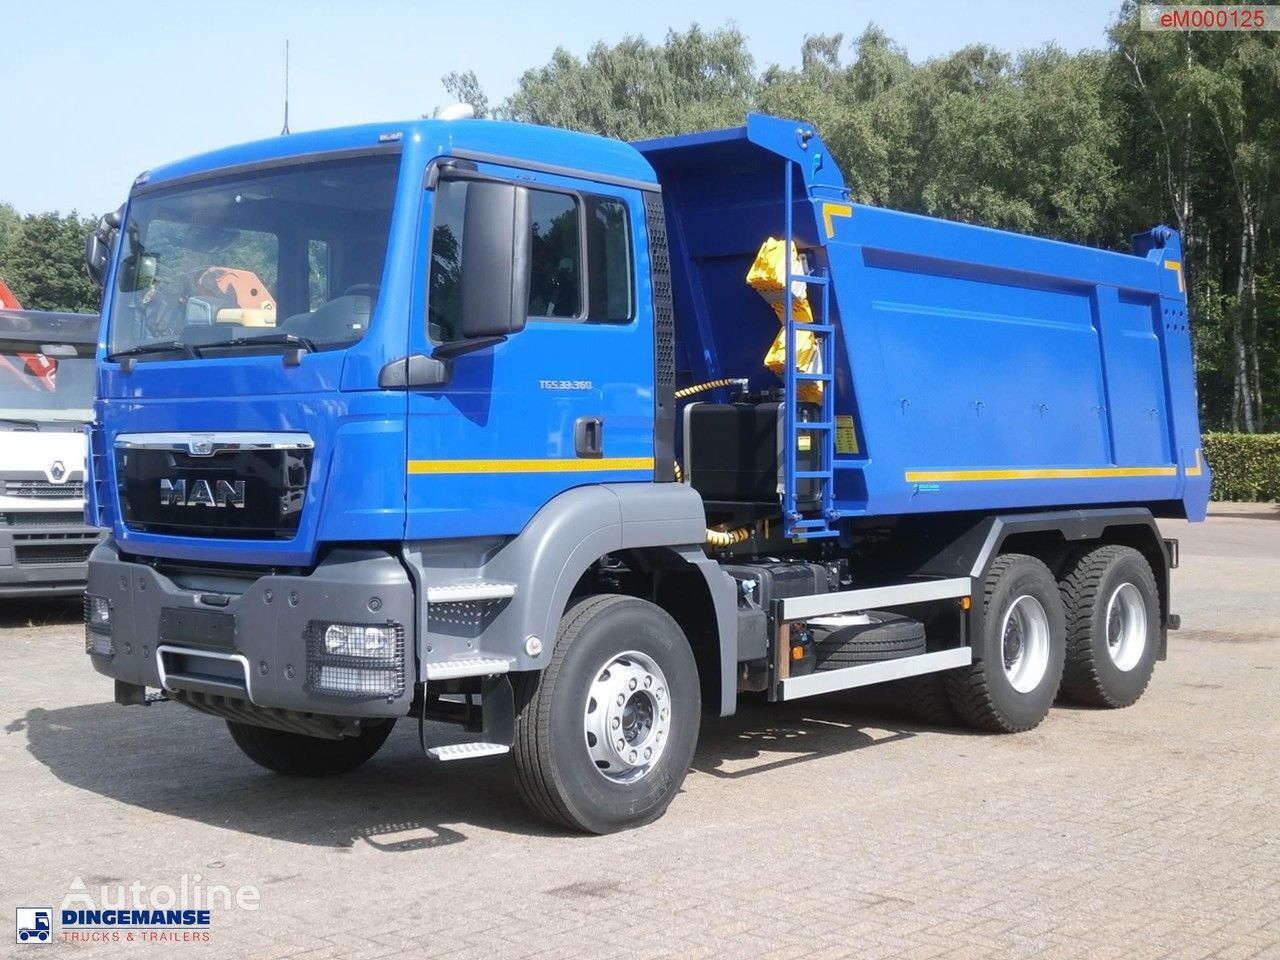 novi MAN TGS 33.360 6X4 tipper NEW/UNUSED kiper